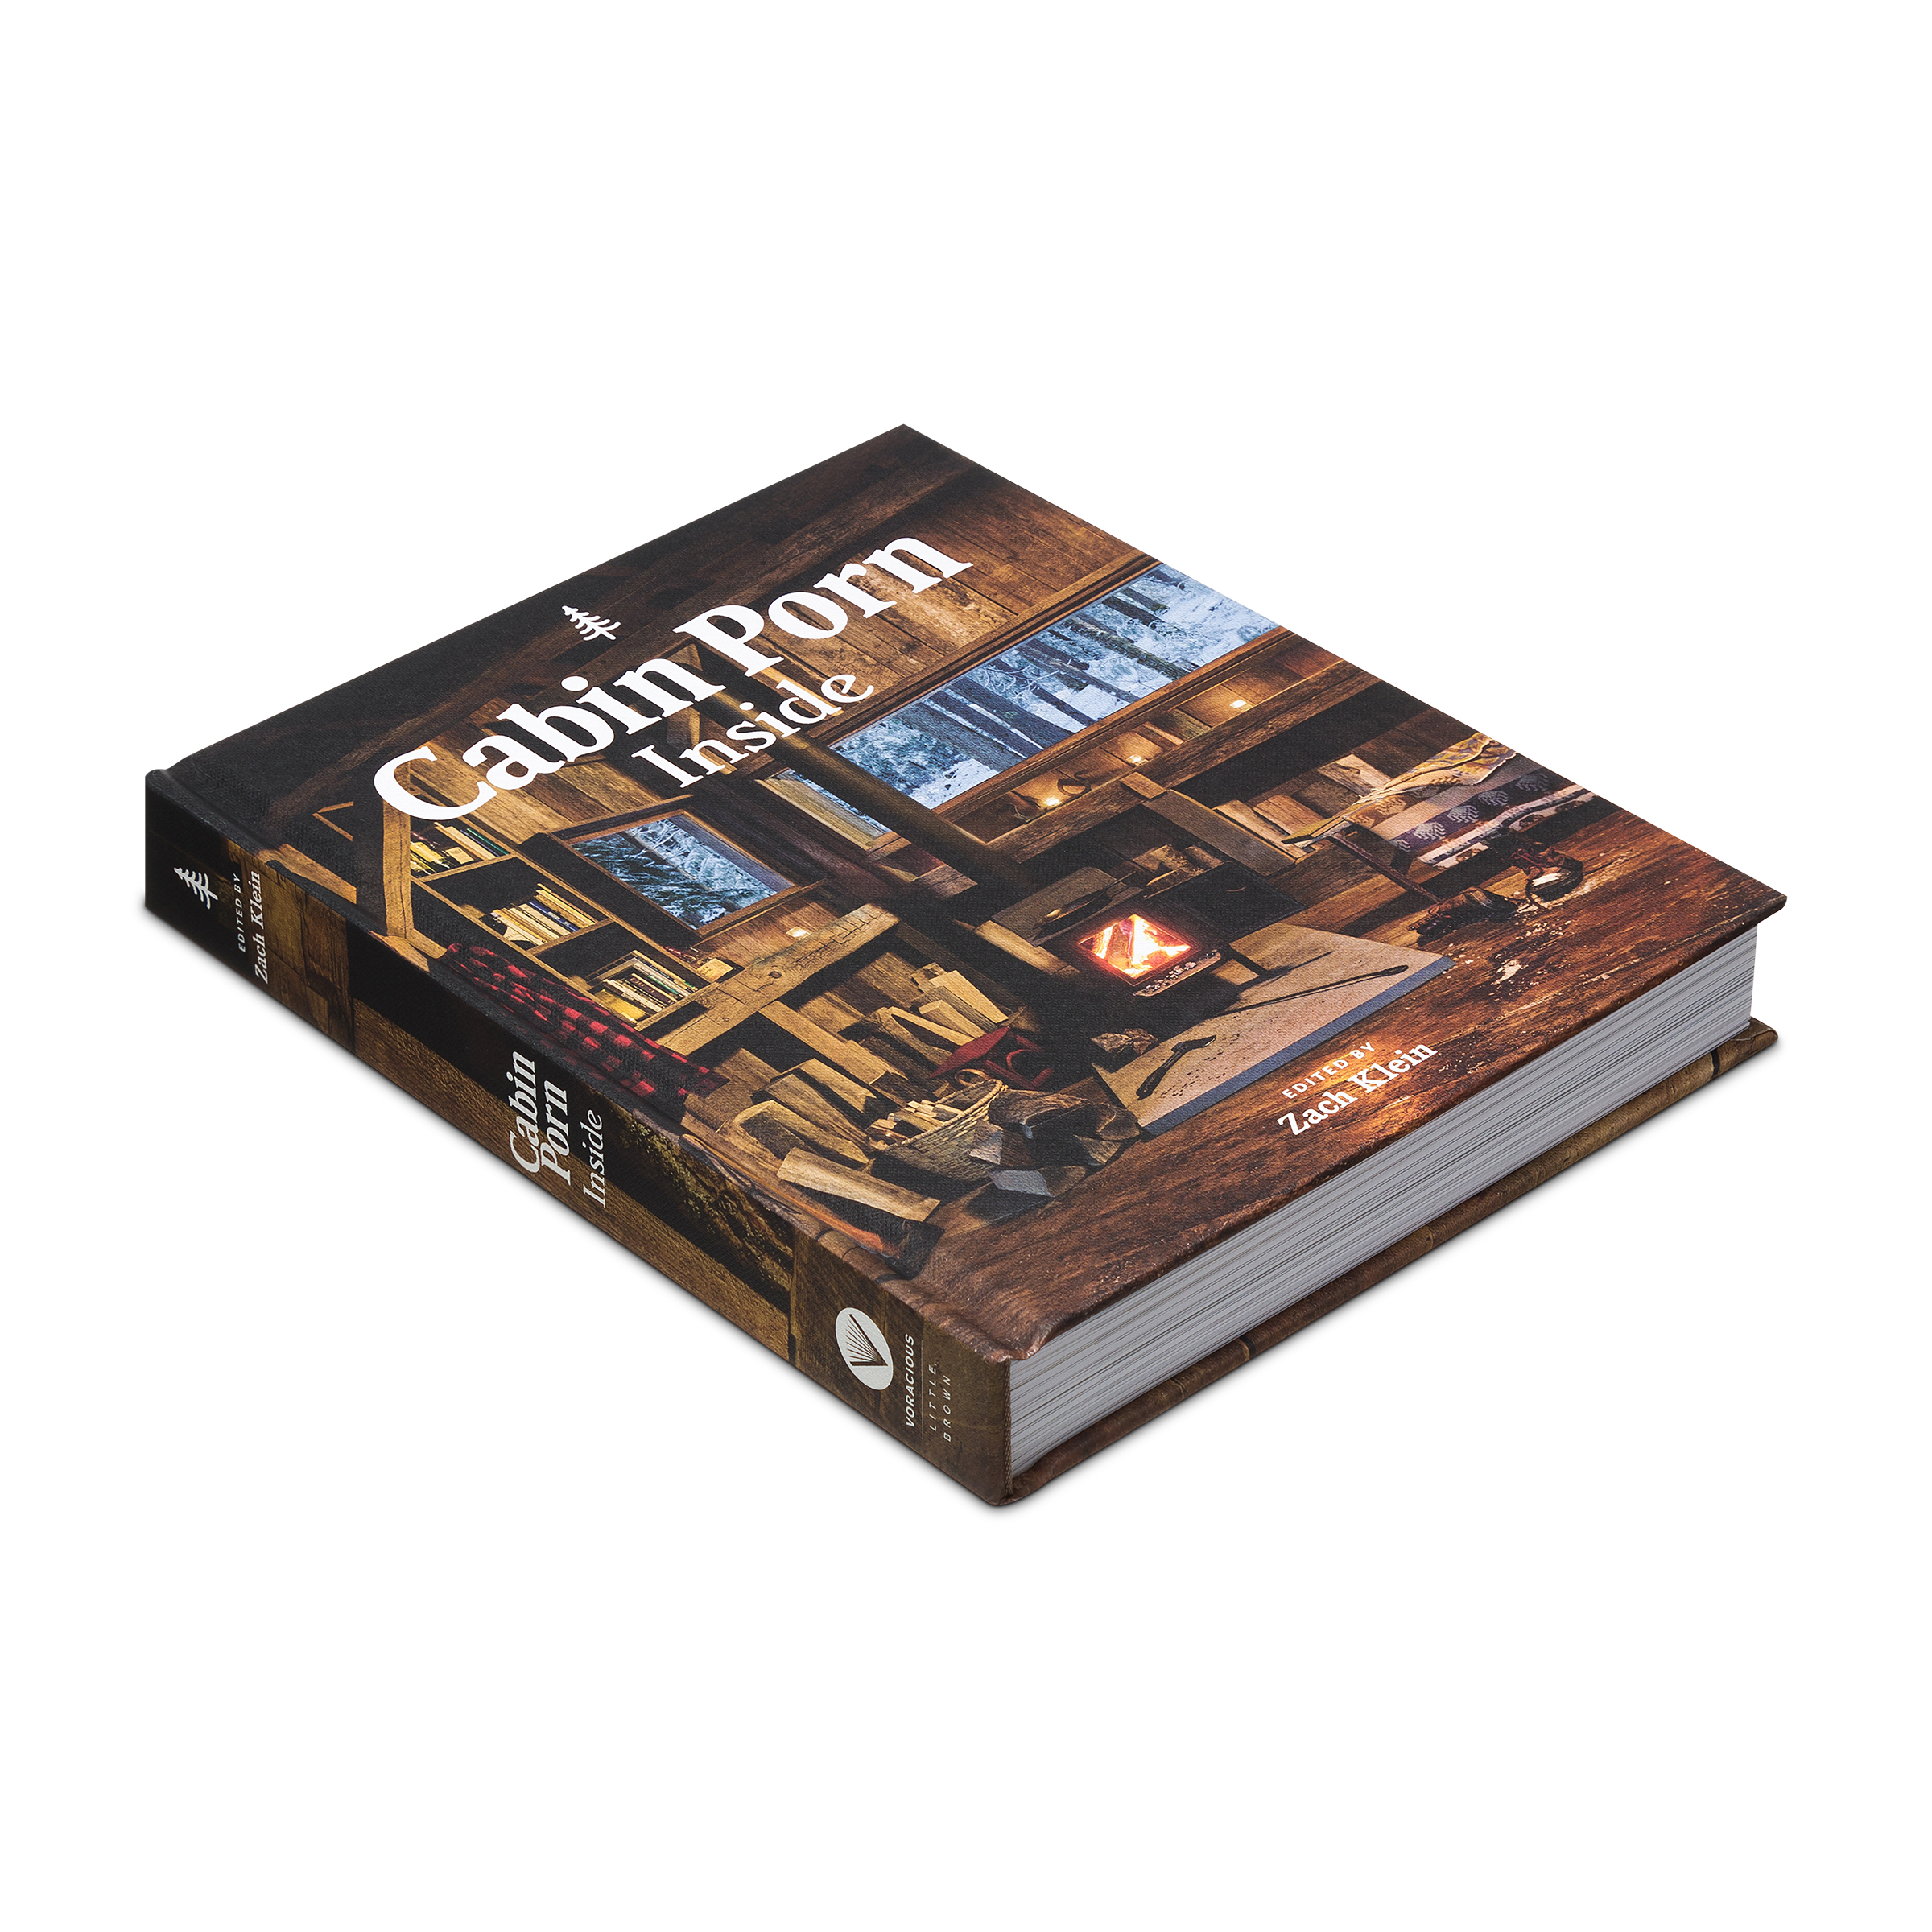 Book product picture